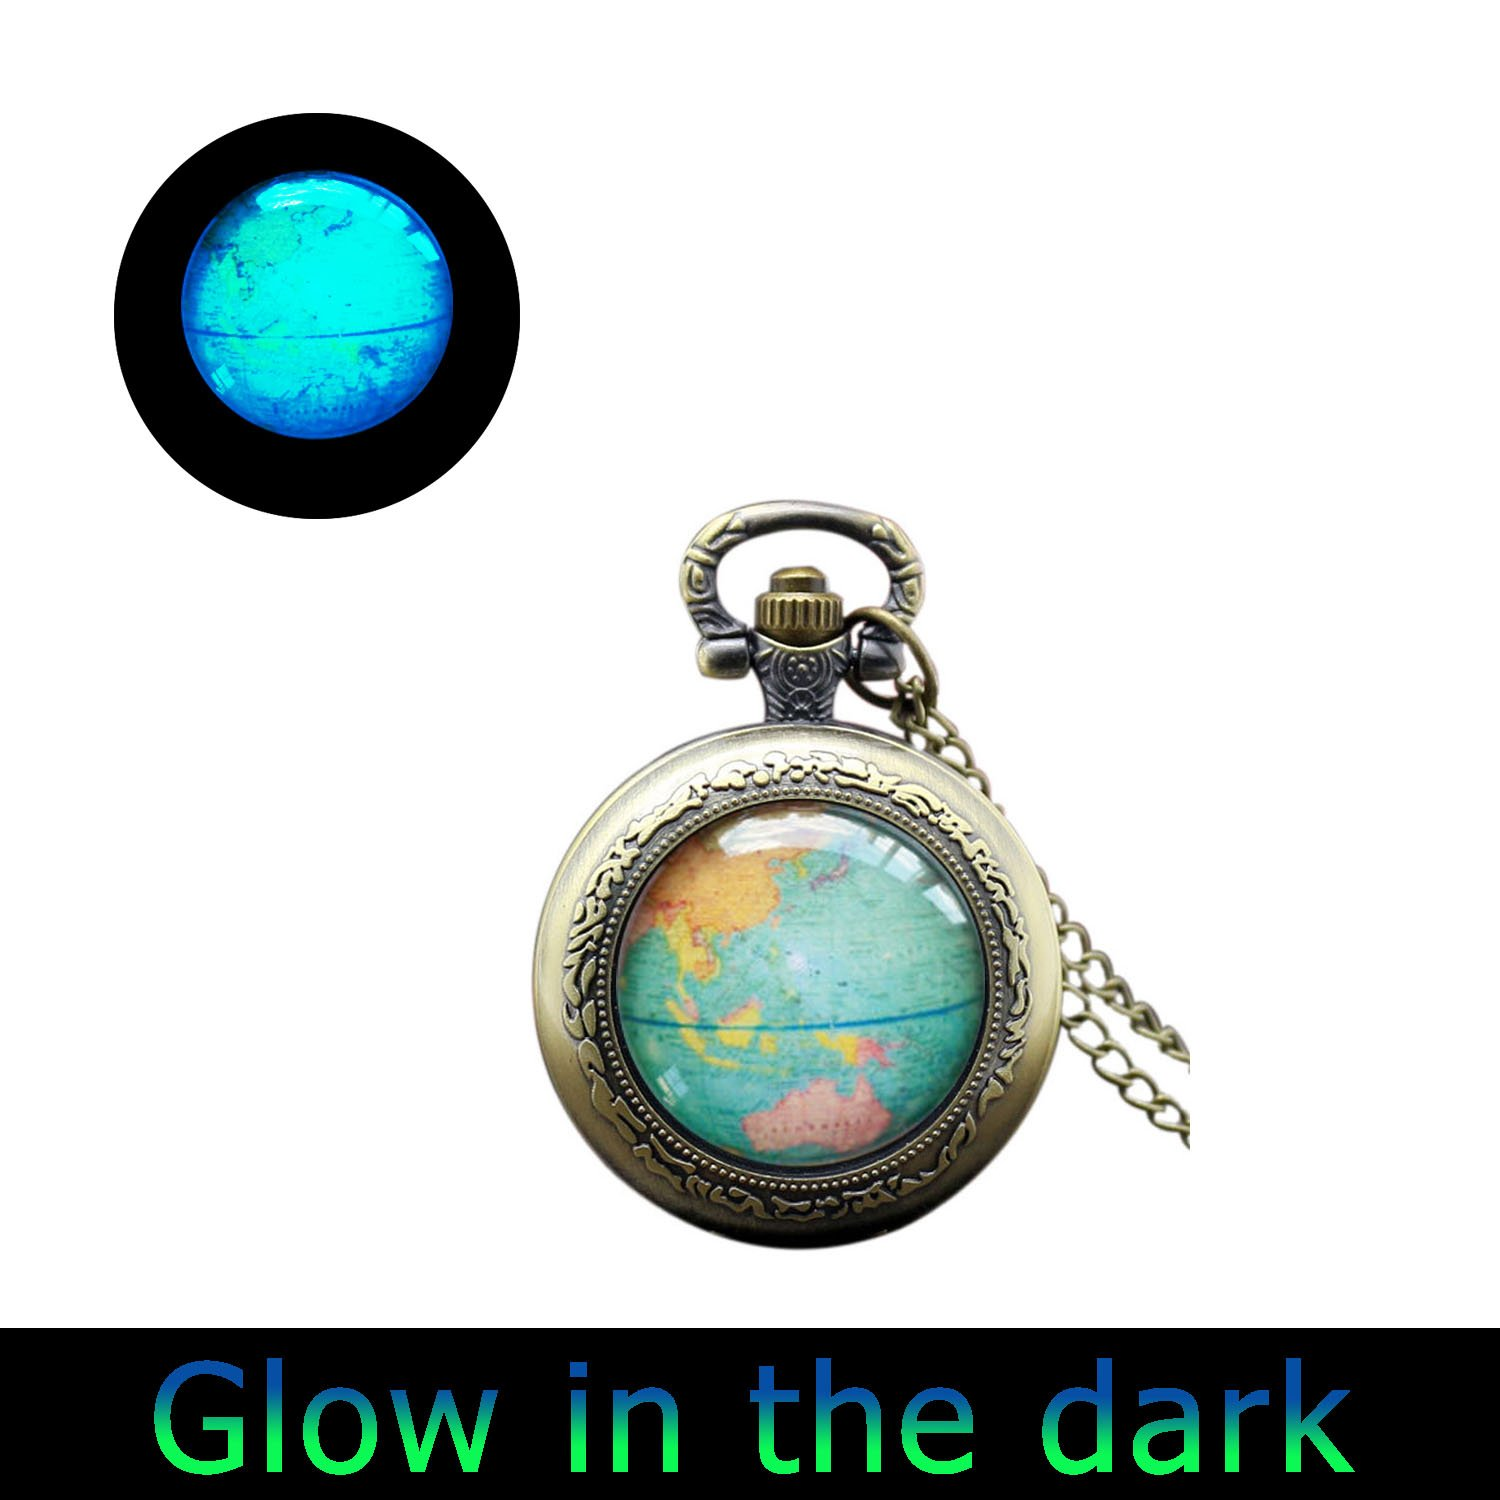 Amazon glowlalaglowing globe watch necklace map watch pendant amazon glowlalaglowing globe watch necklace map watch pendant necklace world map adoption glowing watch jewelry travel glowing watch necklace 1 gumiabroncs